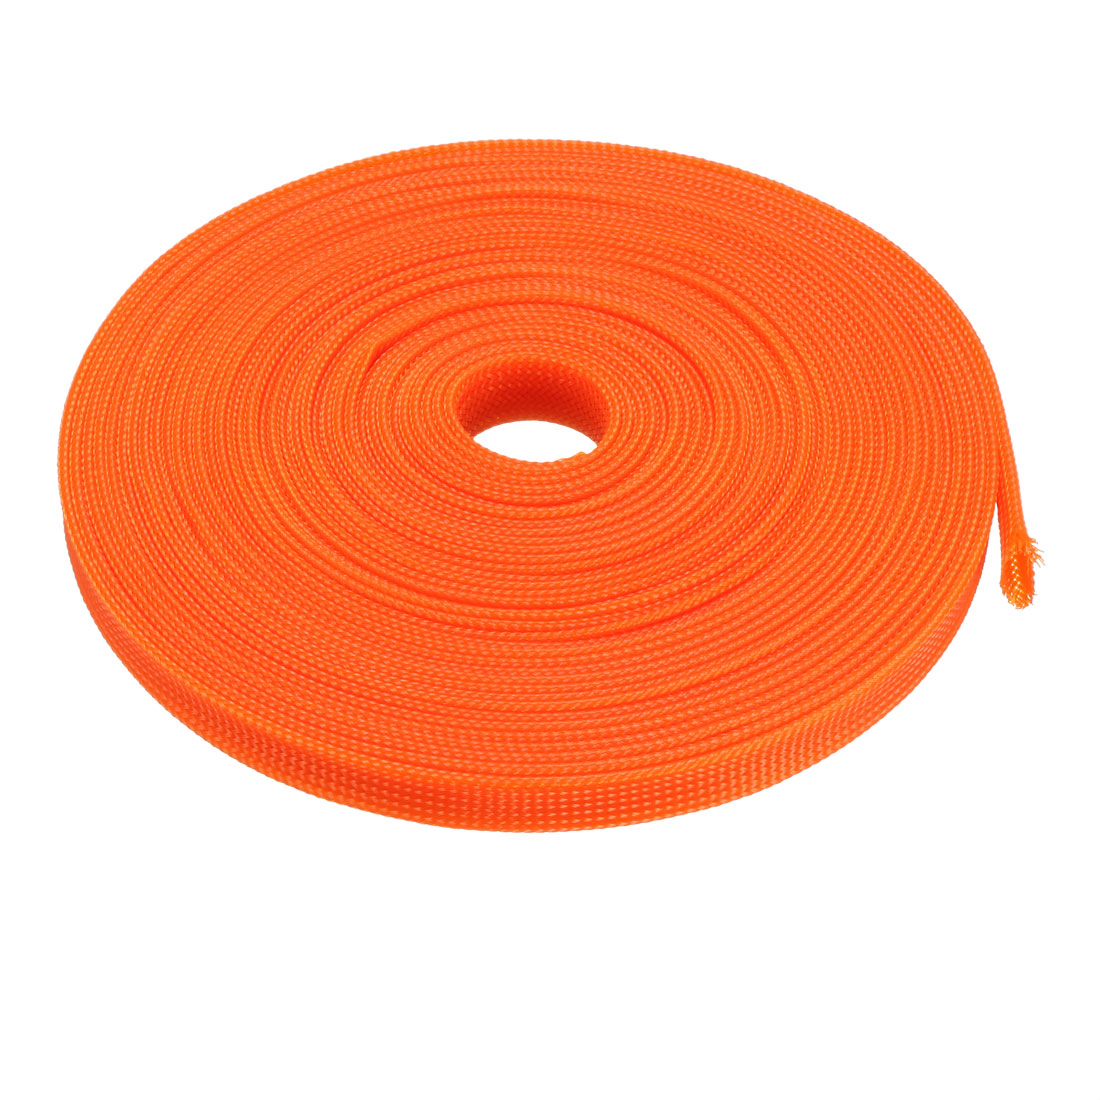 PET Braided Sleeving 32.8 Feet 10m Expandable Cable Wrap 12mm Diameter Wire Sheath Orange